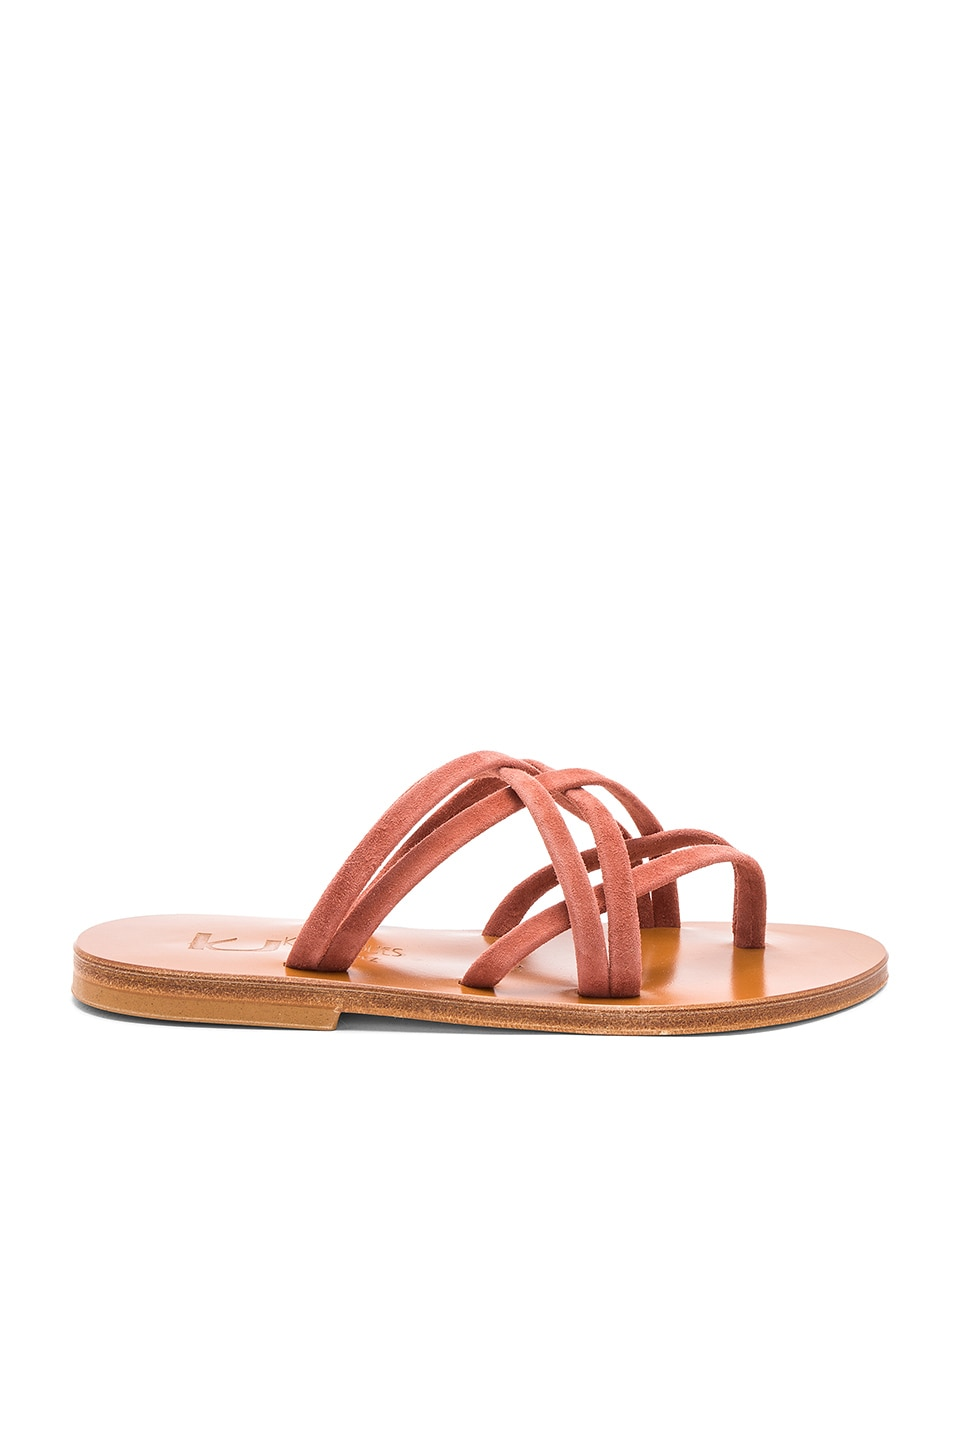 Aloes Sandal